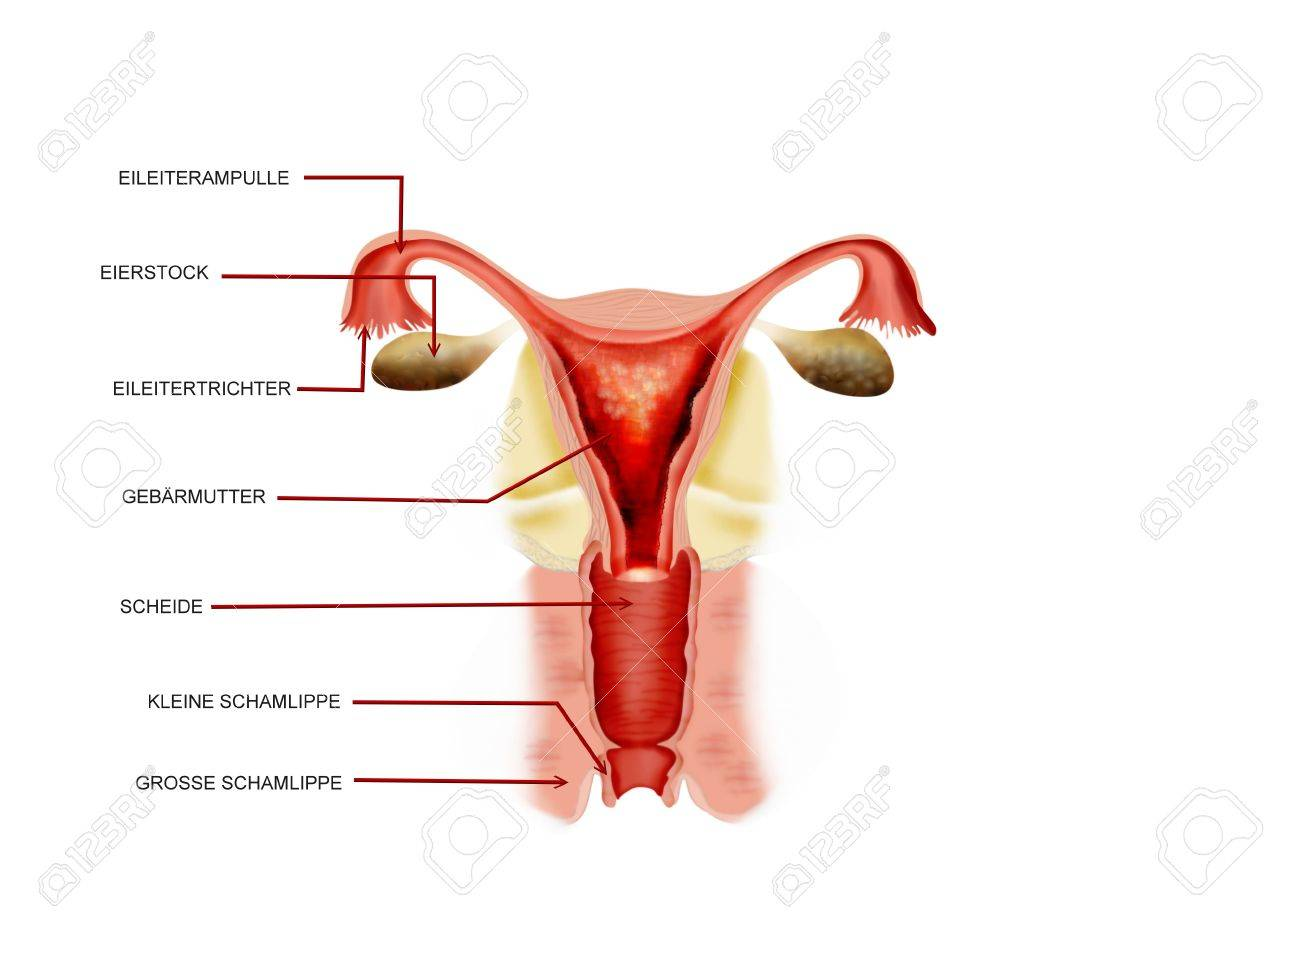 Female Reproductive Organ Stock Photo, Picture And Royalty Free ...